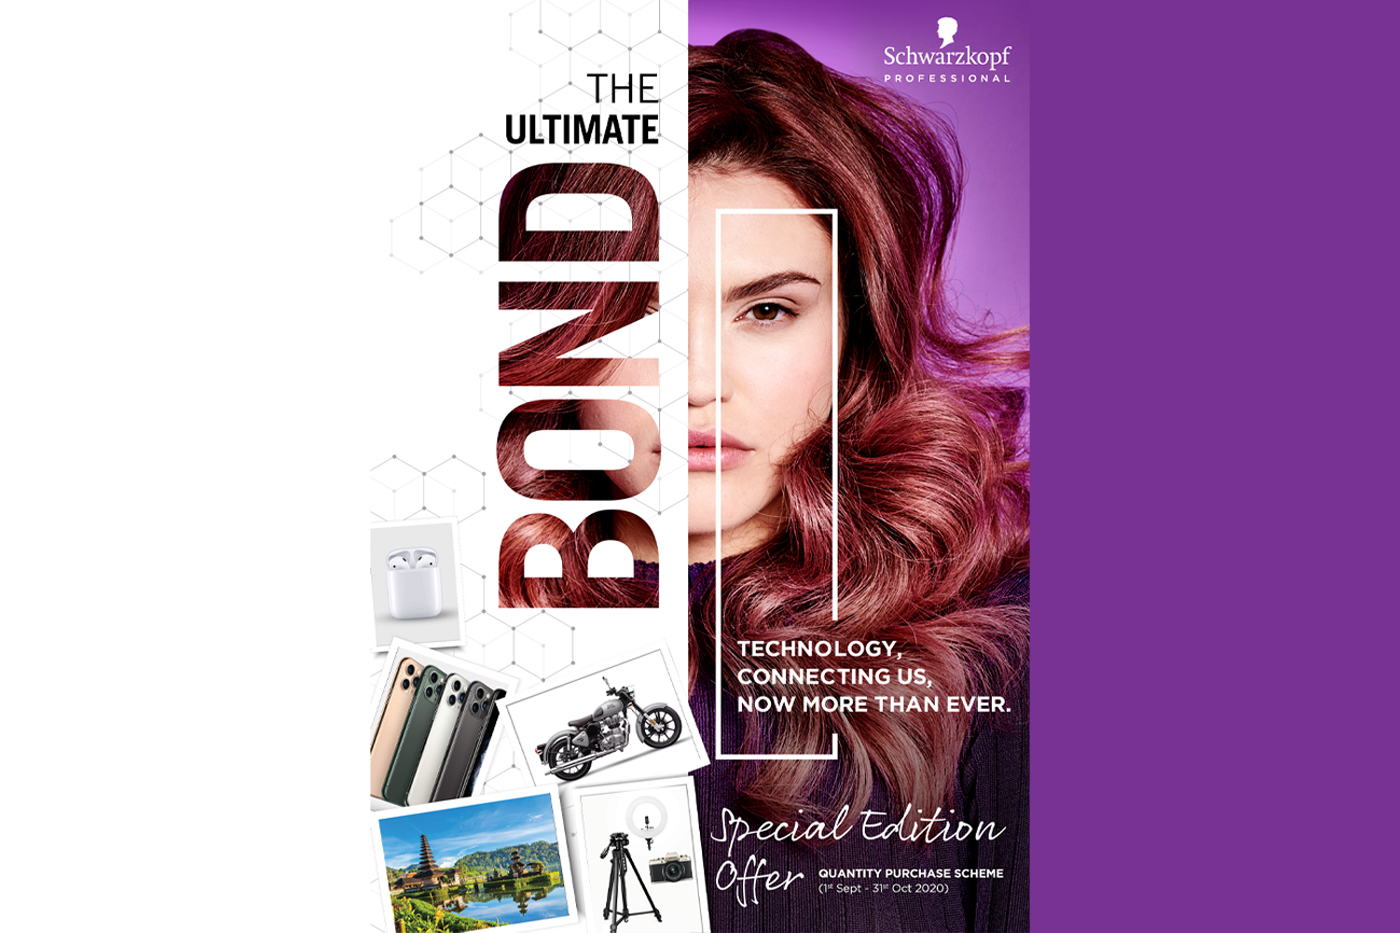 Schwarzkopf Professional introduces a special edition promotion